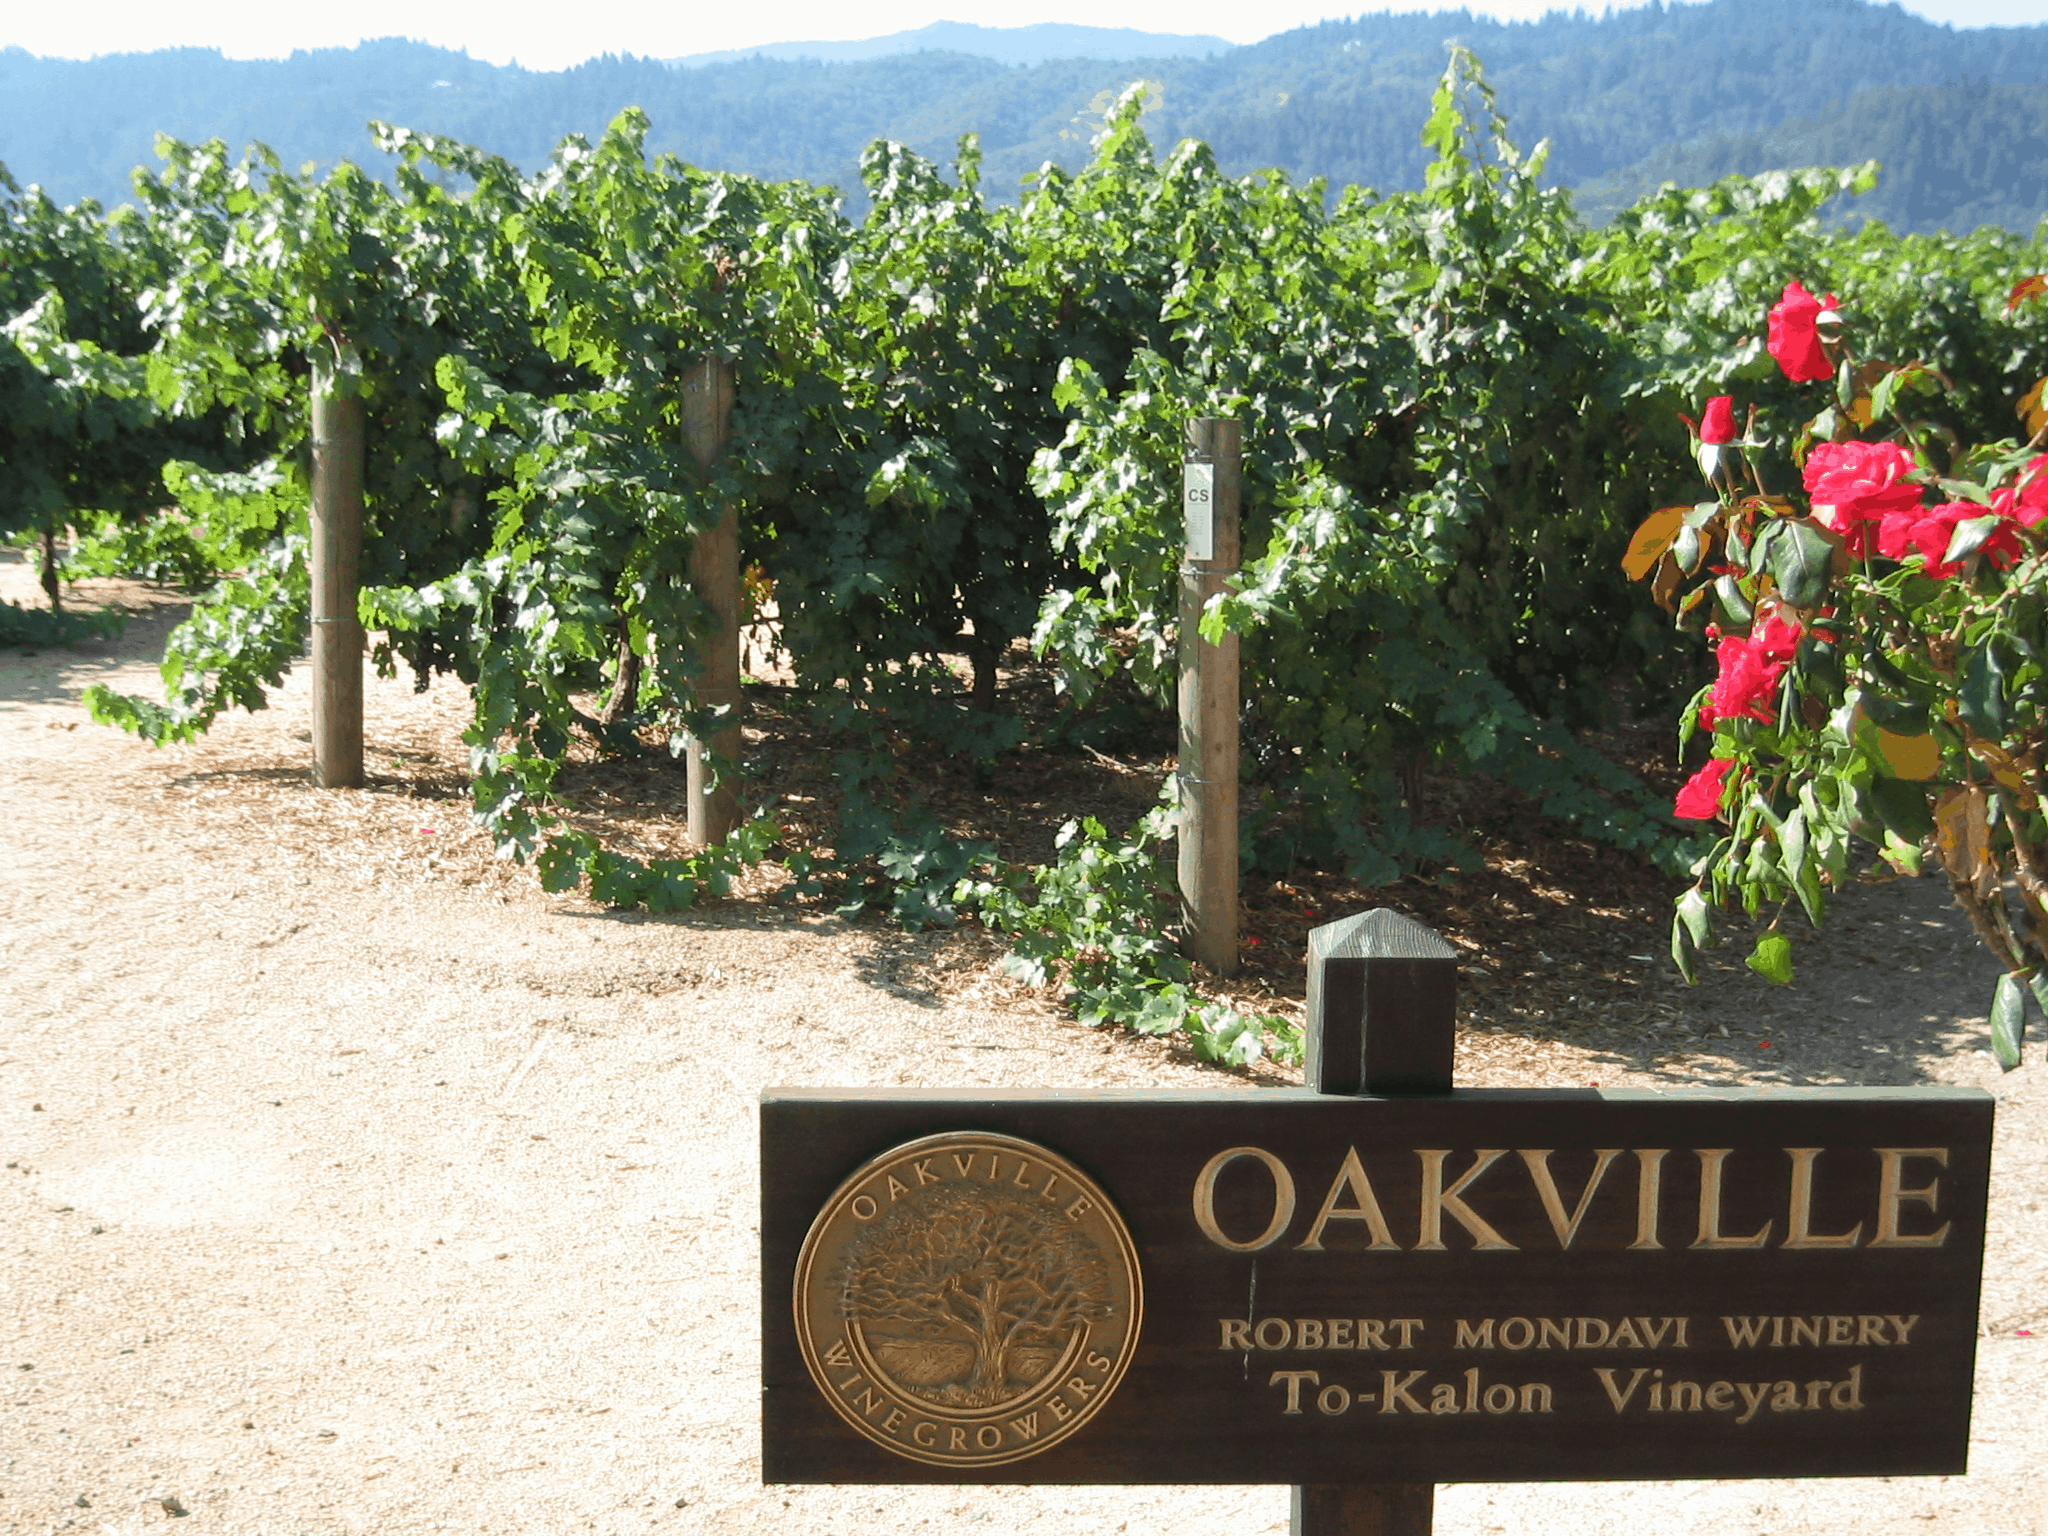 The Oakville AVA contains many illustrious vineyards.